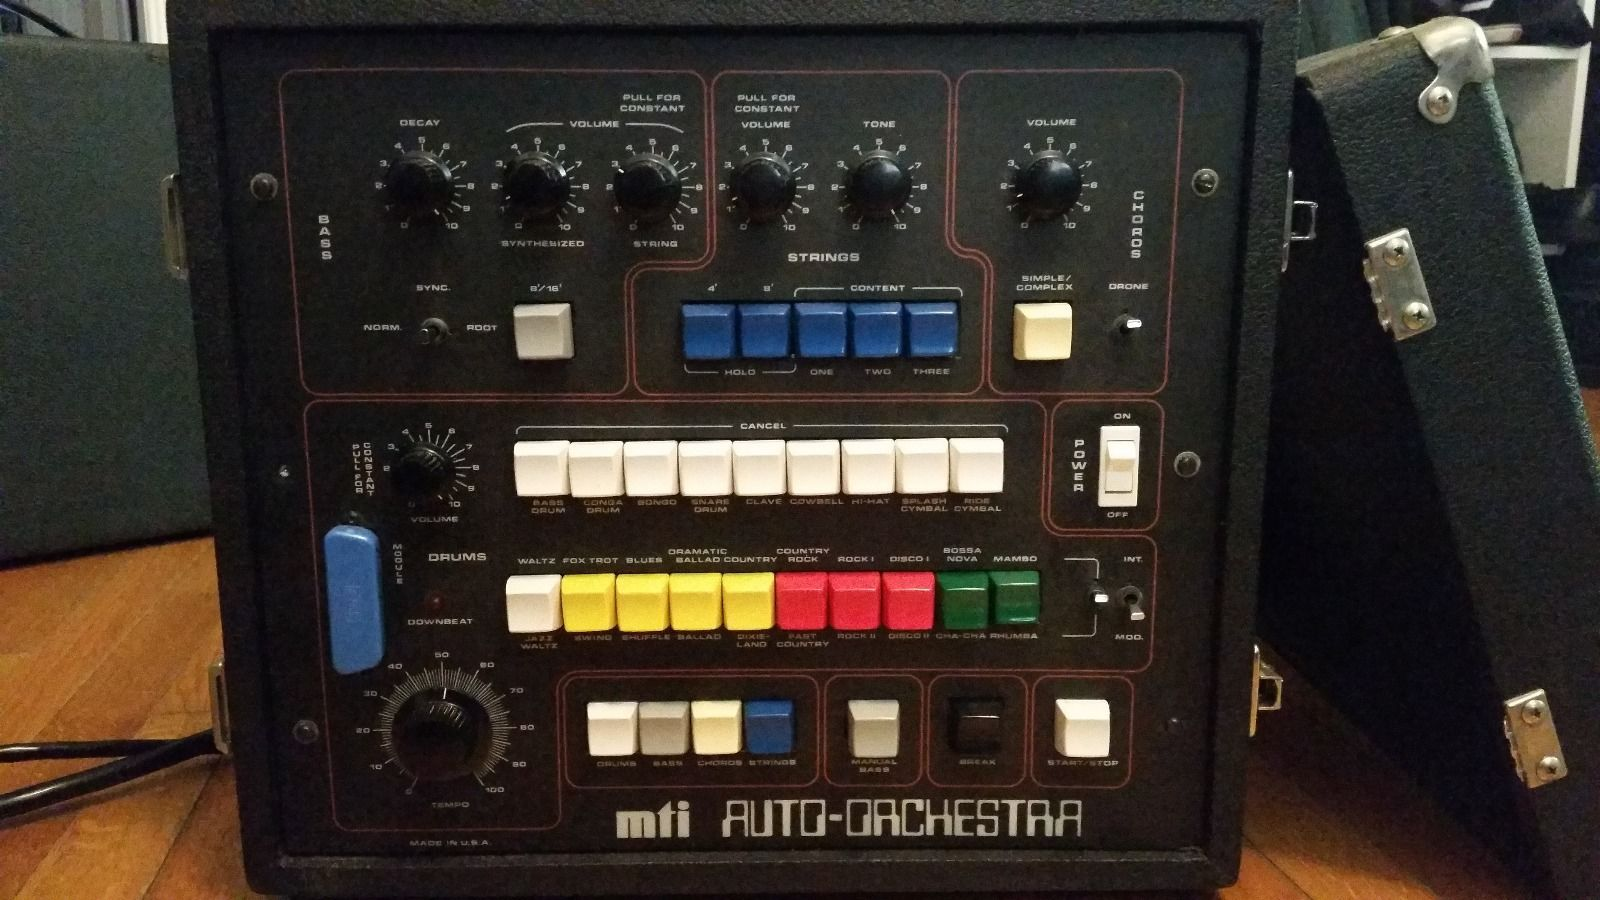 matrixsynth vintage mti auto orchestra drum machine with bass pedals. Black Bedroom Furniture Sets. Home Design Ideas